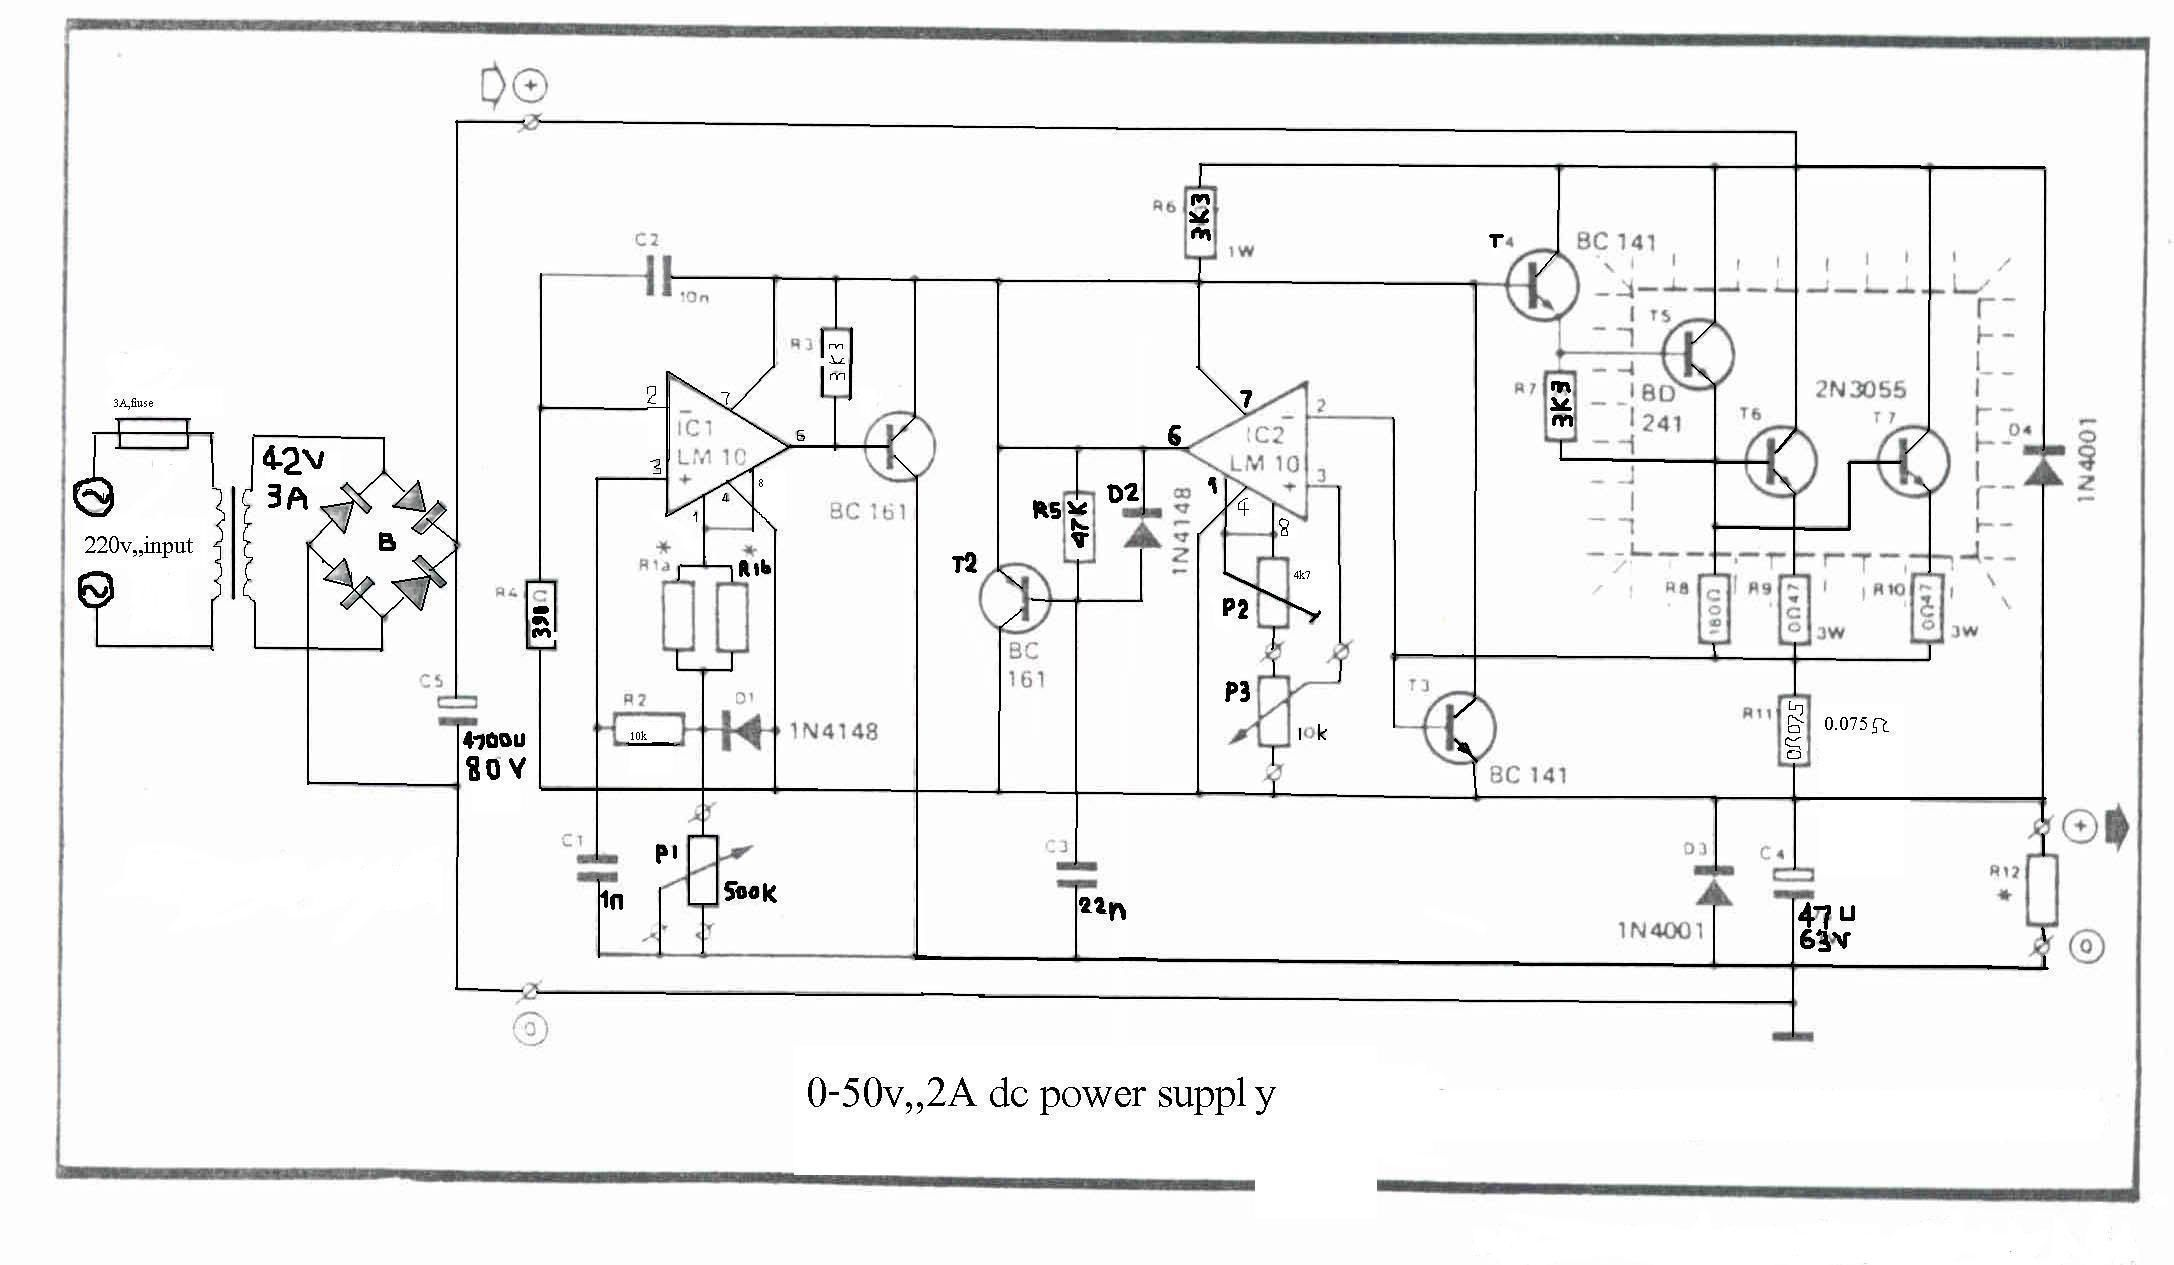 hight resolution of 0 50v 2a bench power supply electronics lab